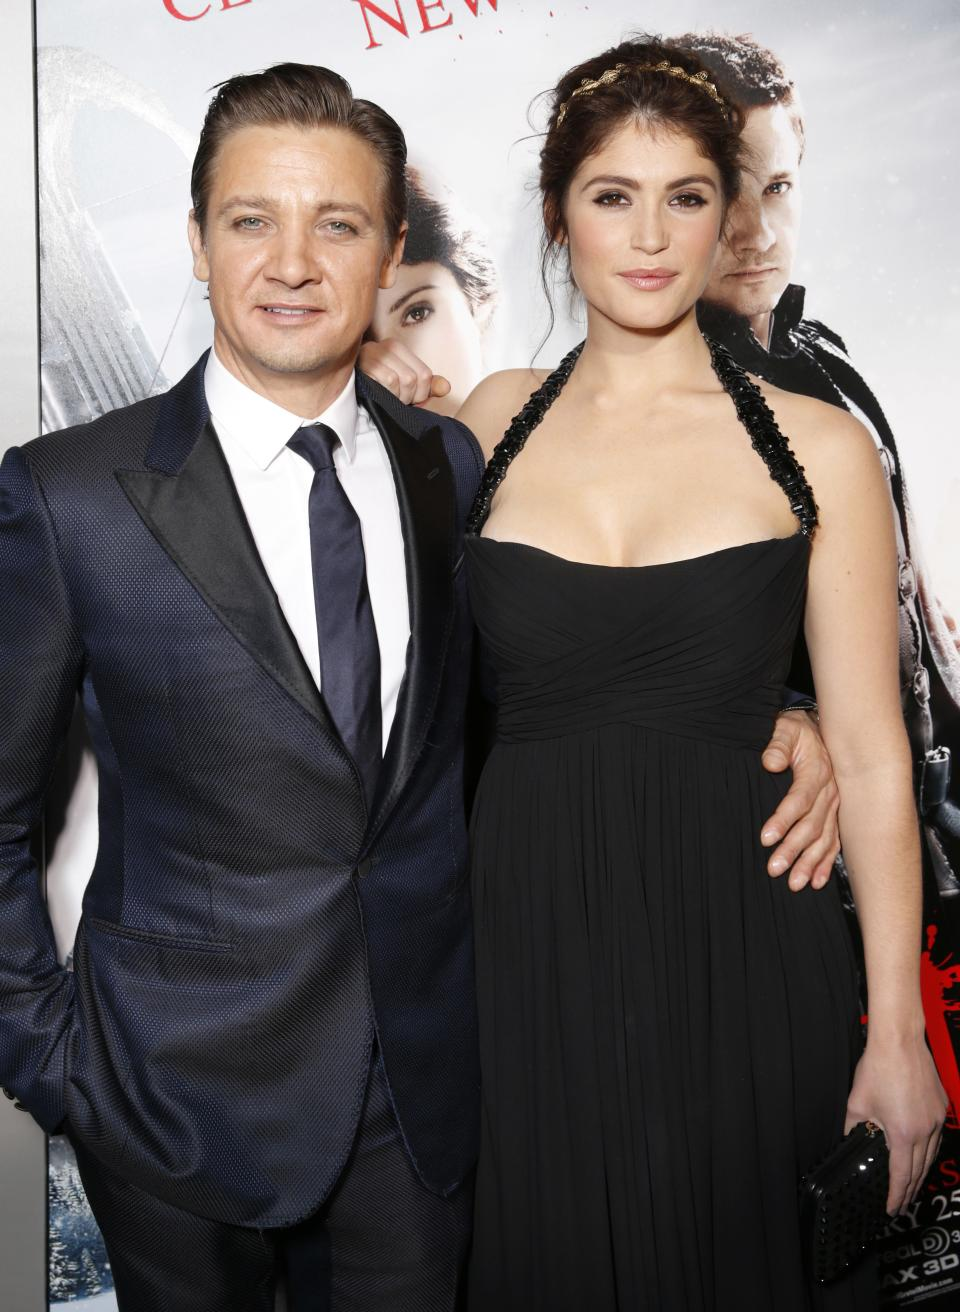 "Jeremy Renner and Gemma Arterton arrive at the premiere of ""Hansel & Gretel Witch Hunters"" on Thursday Jan. 24, 2013, in Los Angeles.  (Photo by Todd Williamson/Invision/AP)"